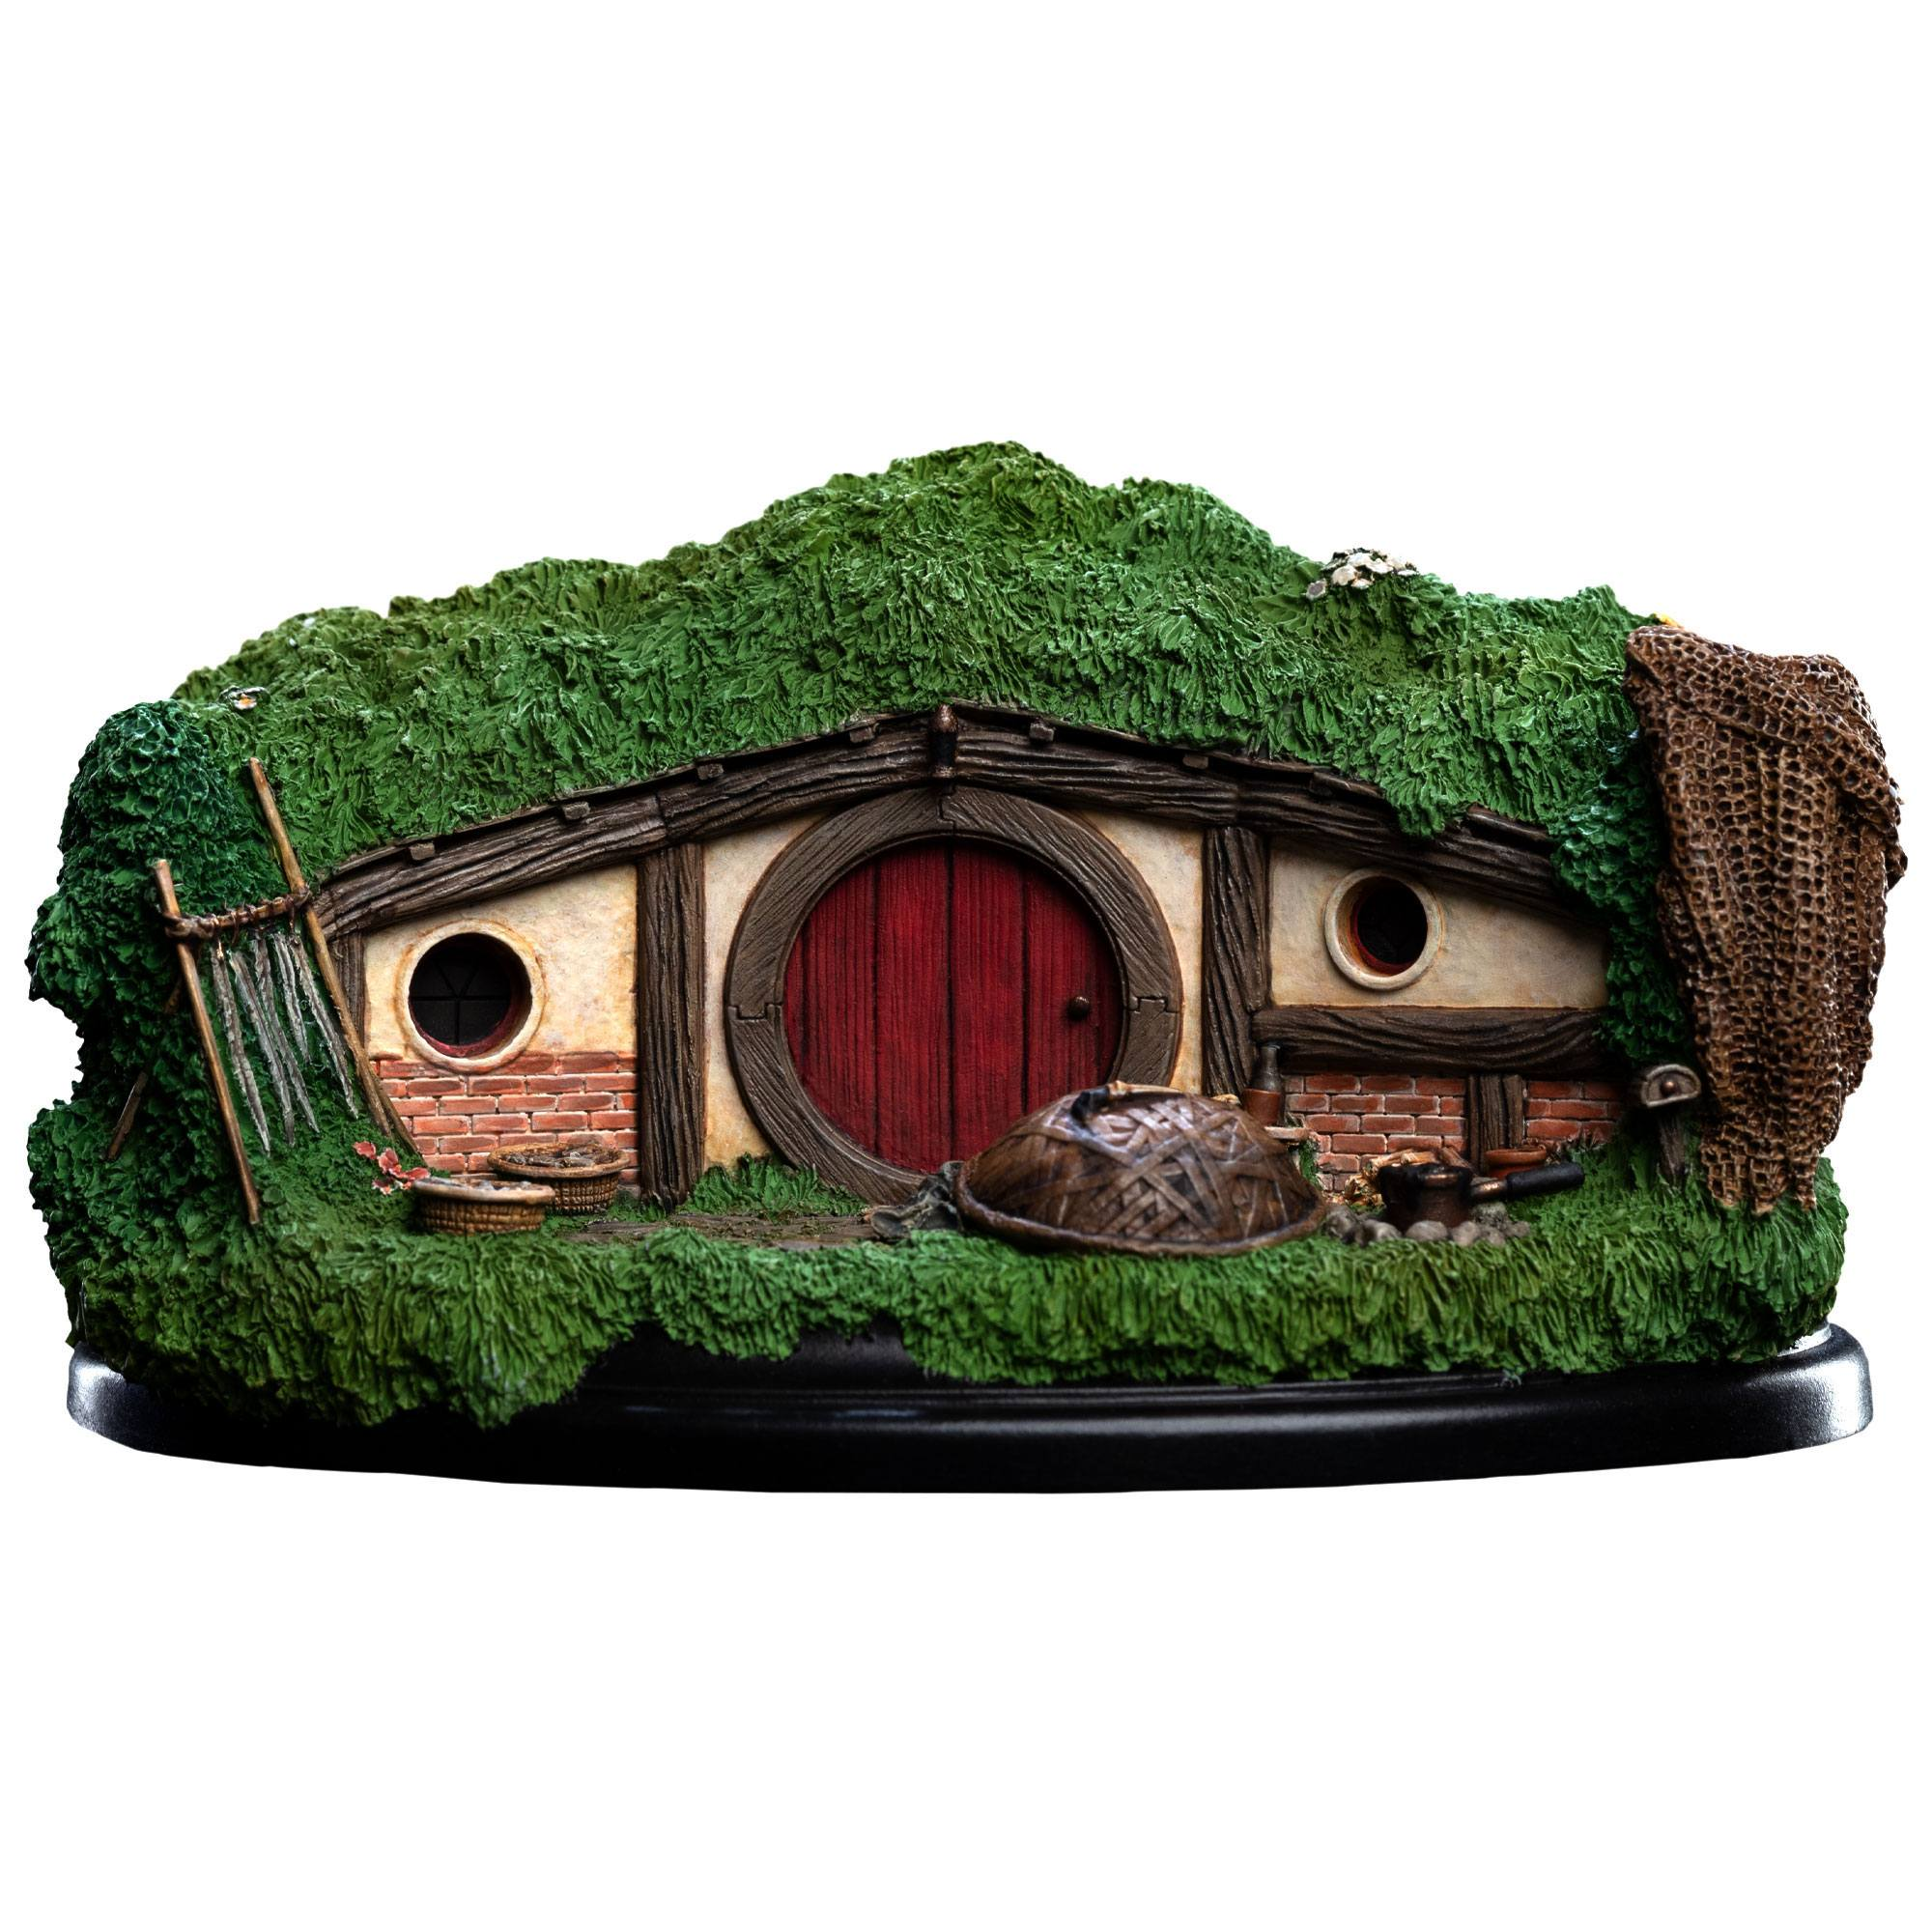 The Hobbit An Unexpected Journey Statue 31 Lakeside 12 cm